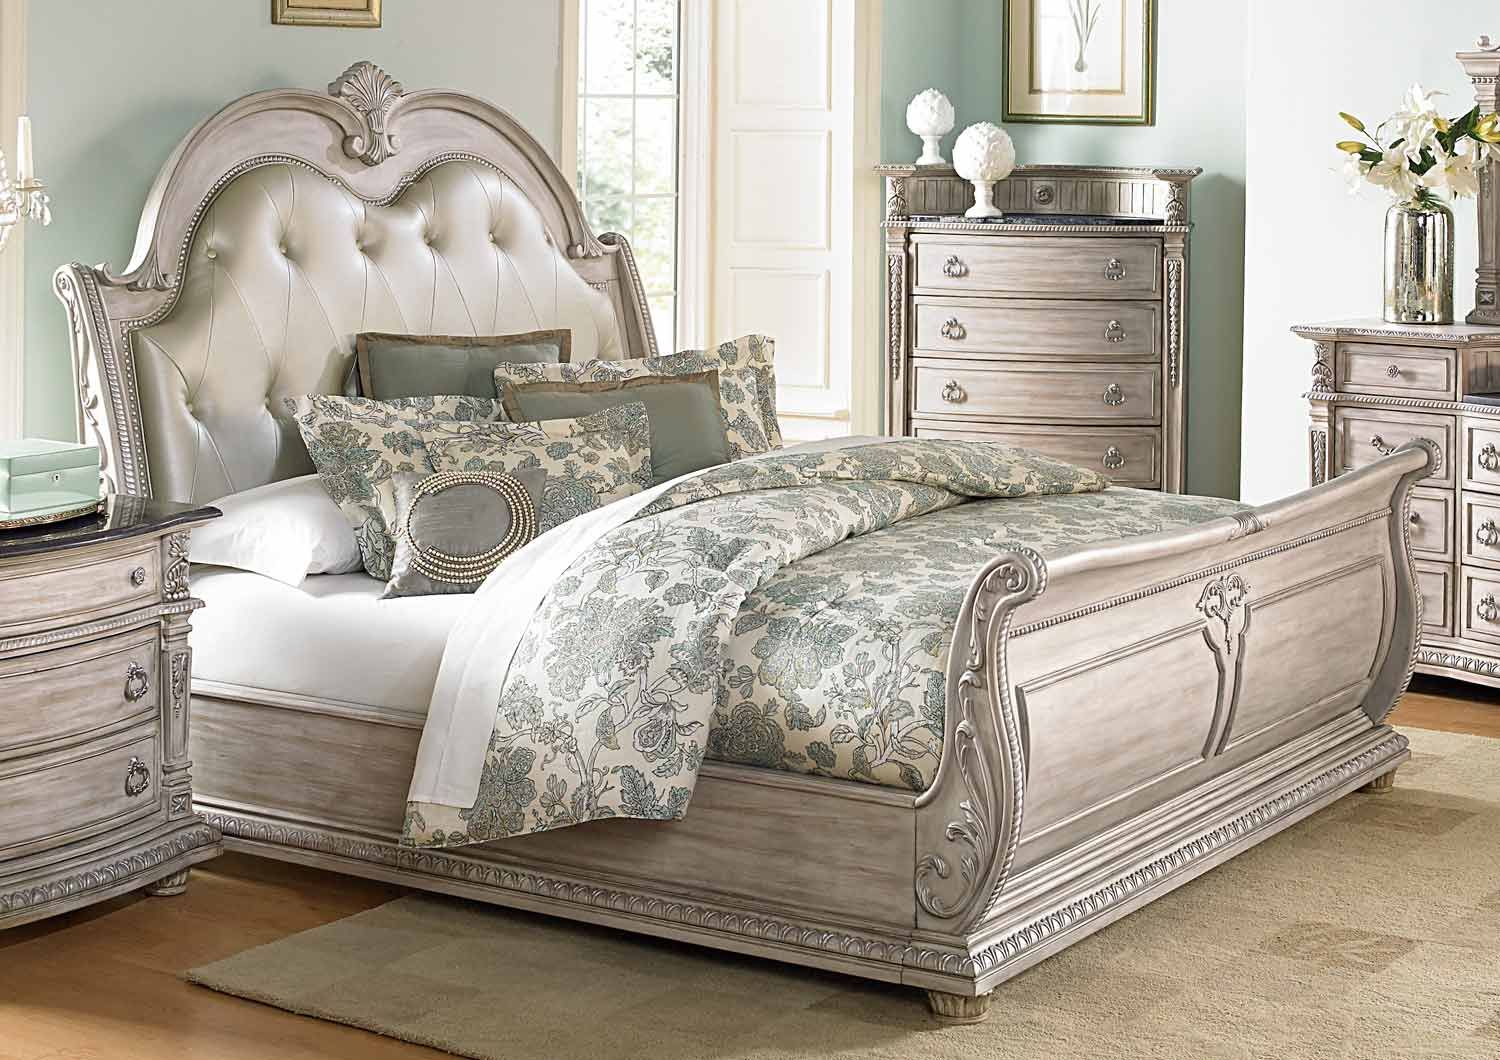 Homelegance Palace II Upholstered Bed - Weathered White Rub-Through